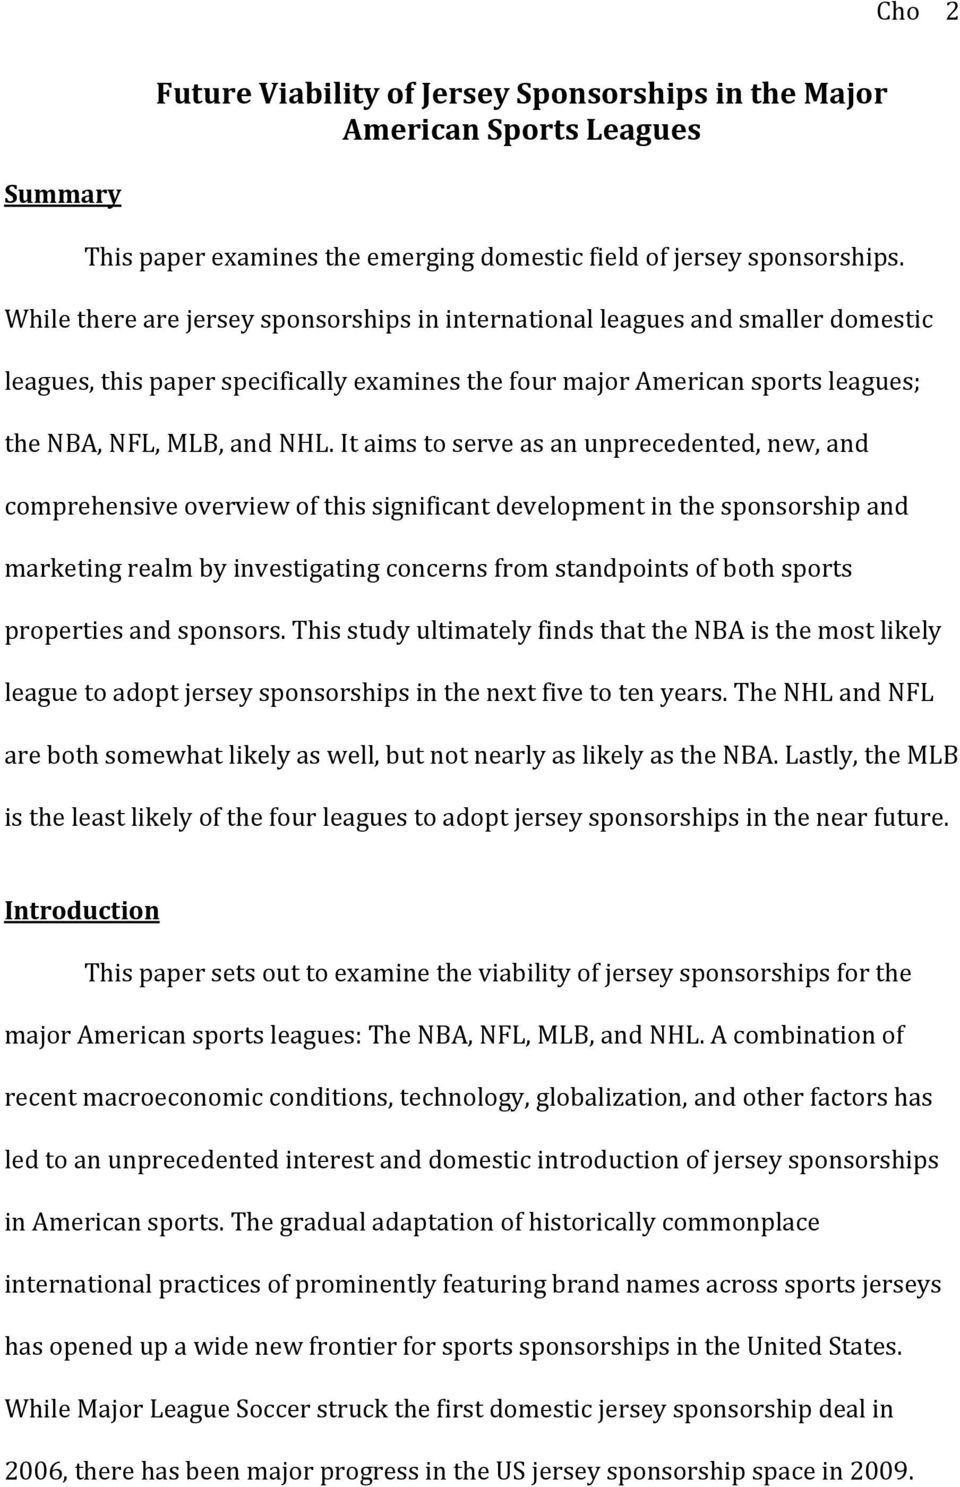 It aims to serve as an unprecedented, new, and comprehensive overview of this significant development in the sponsorship and marketing realm by investigating concerns from standpoints of both sports